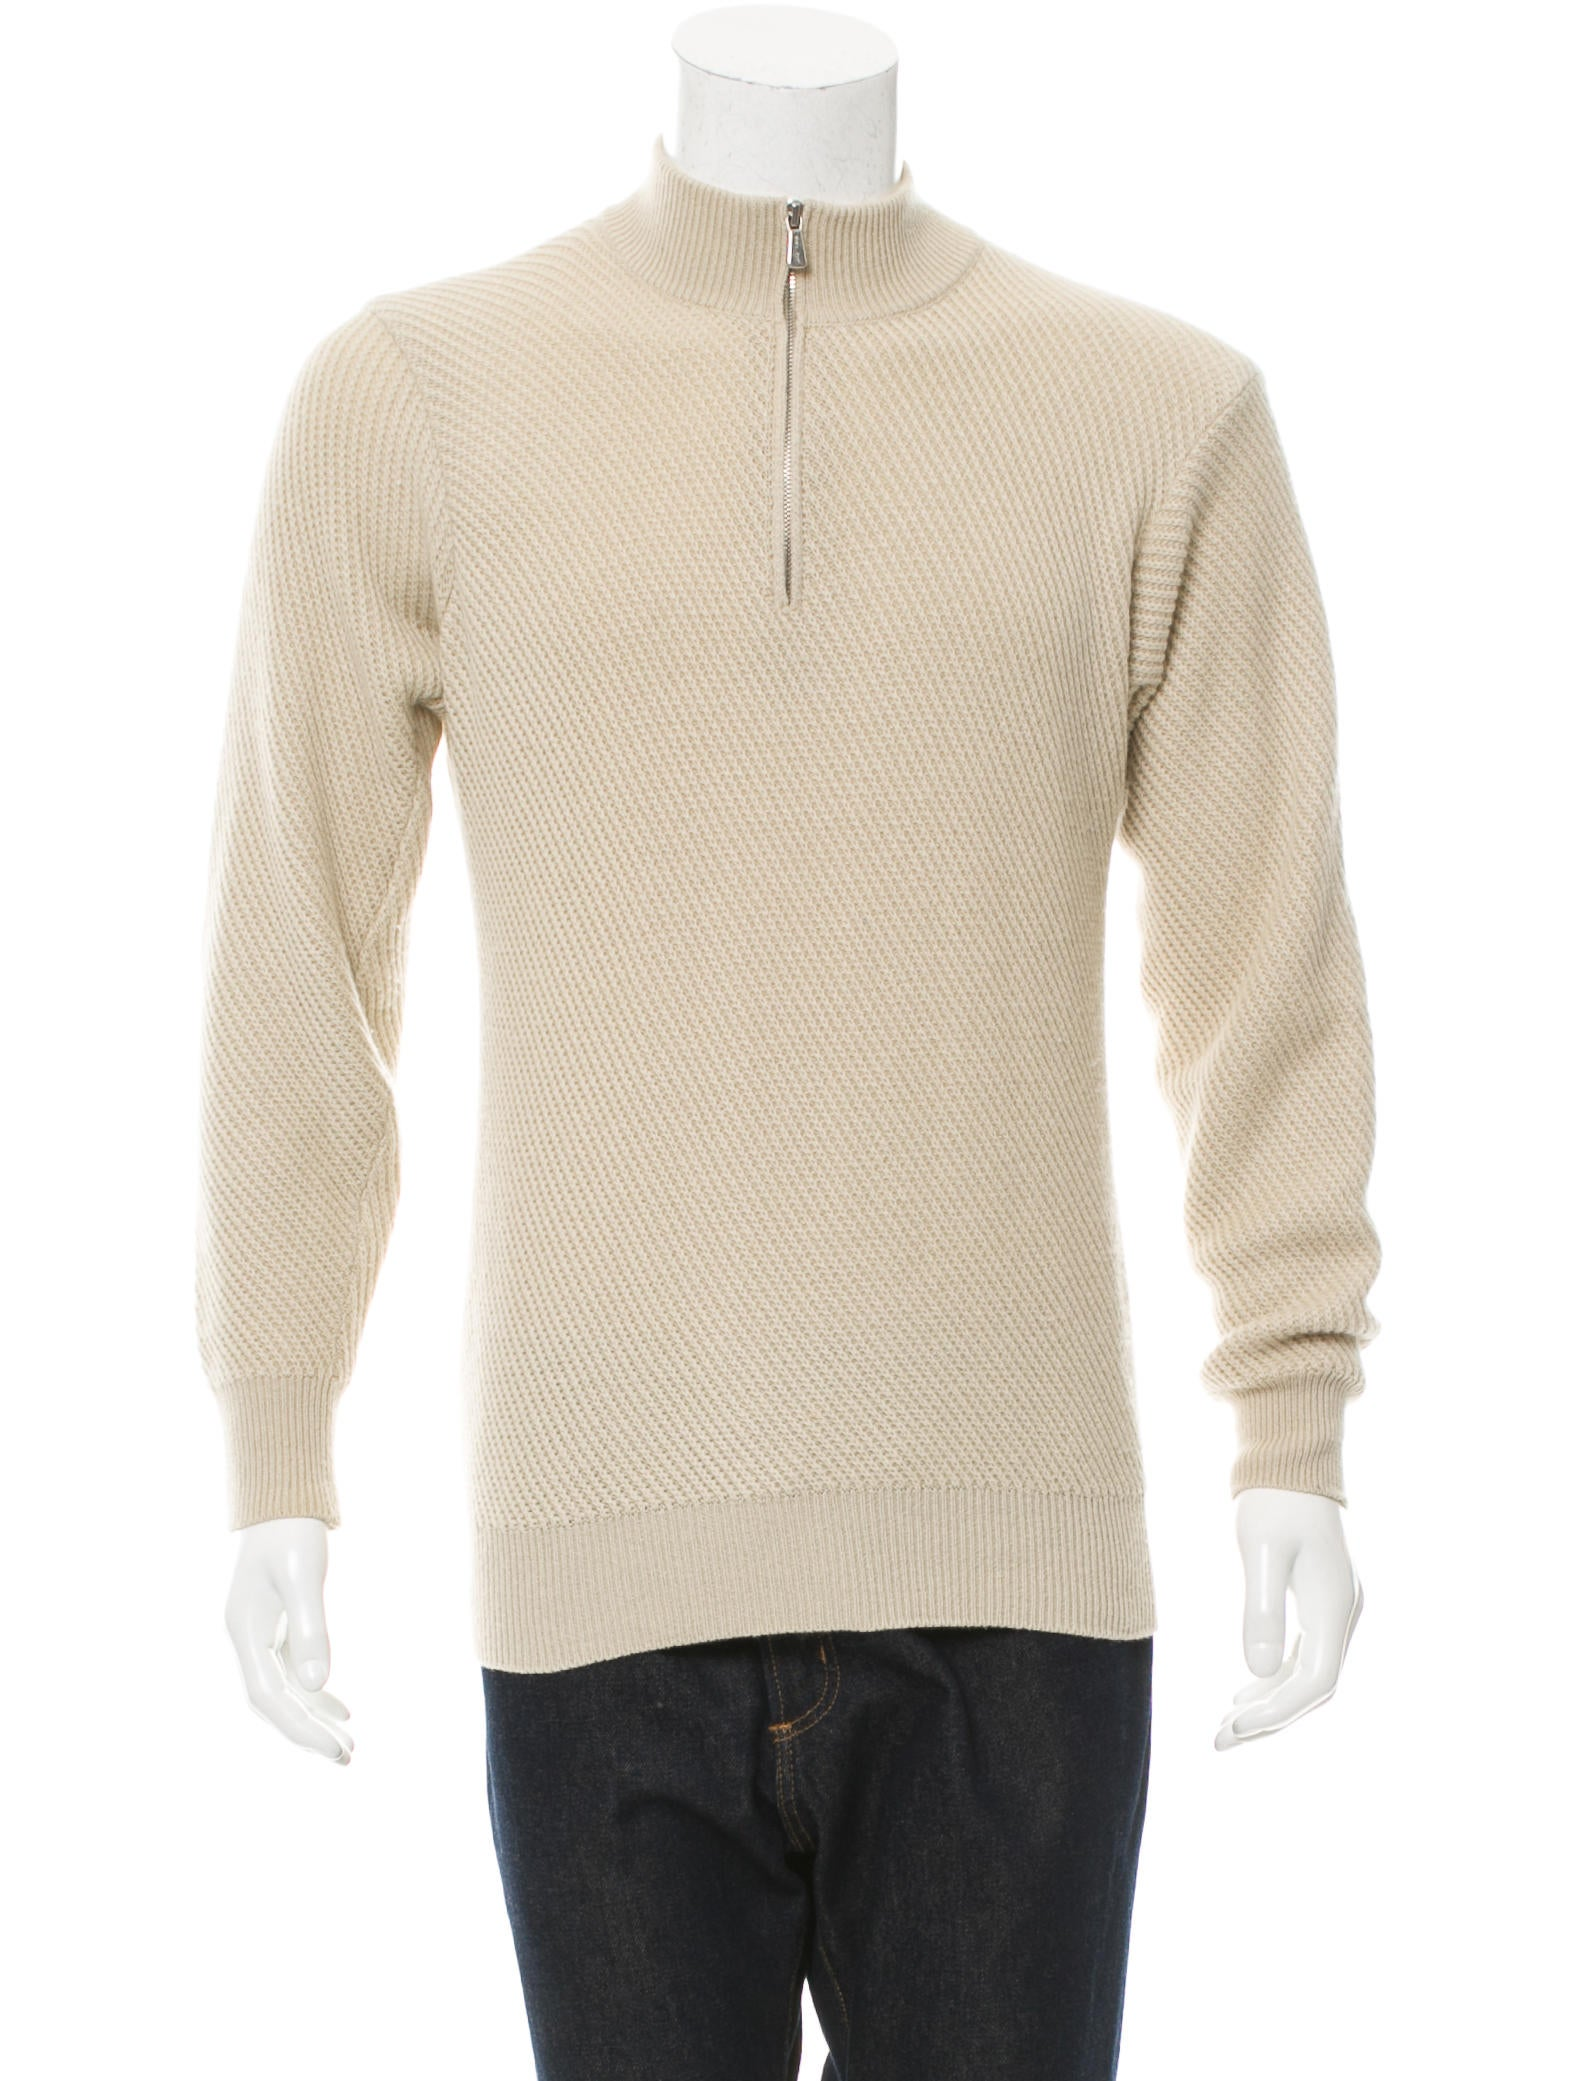 Loro Piana Rib Knit Half-Zip Sweater - Clothing - LOR34488 The RealReal